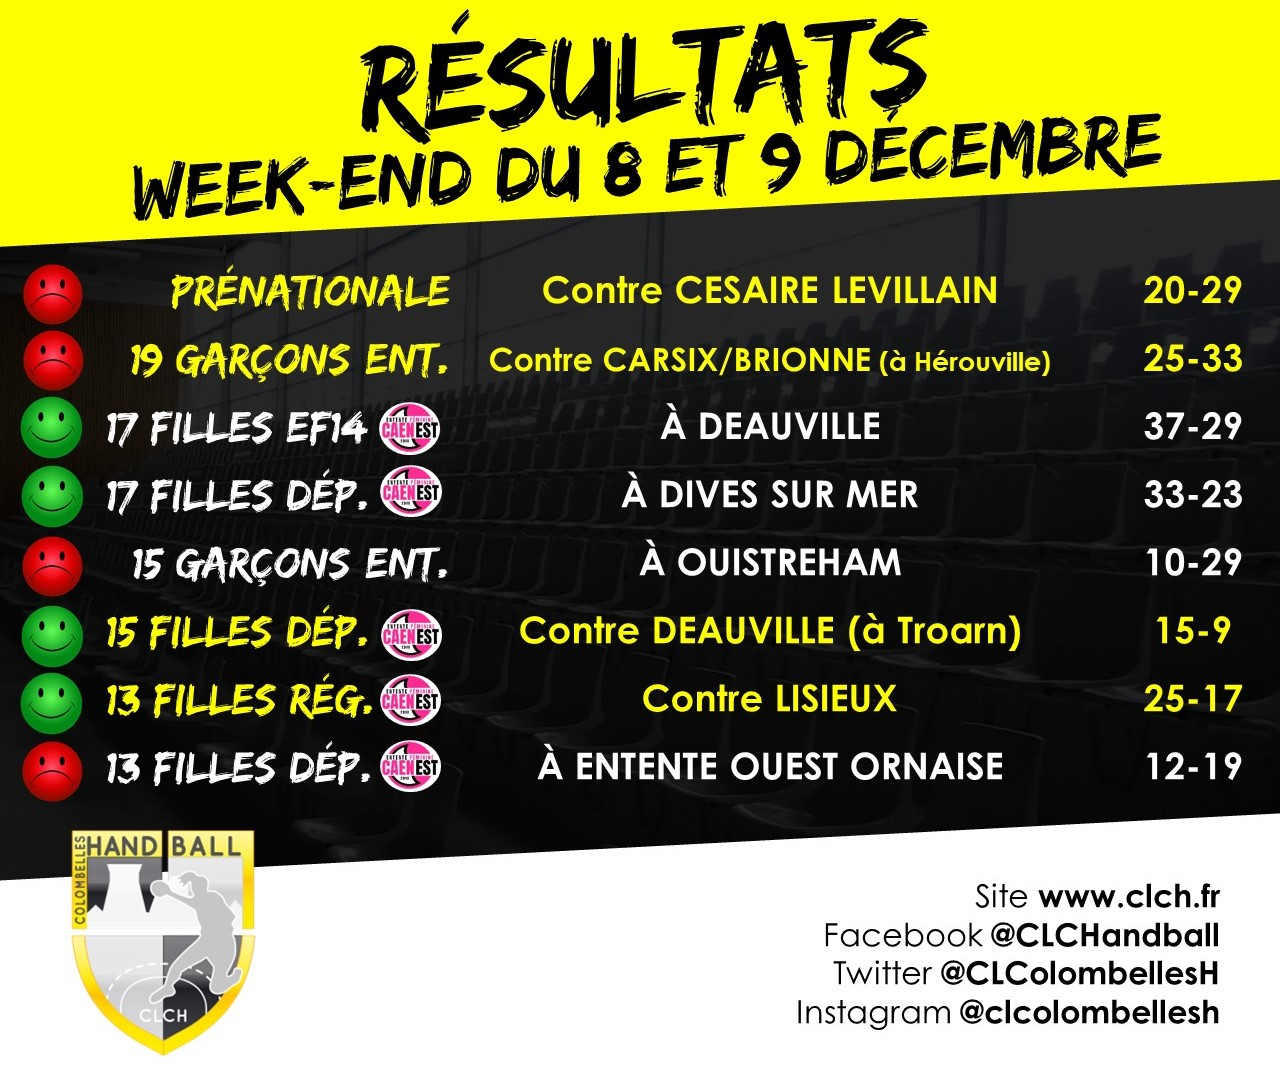 RES WEEKEND 8-9 DEC